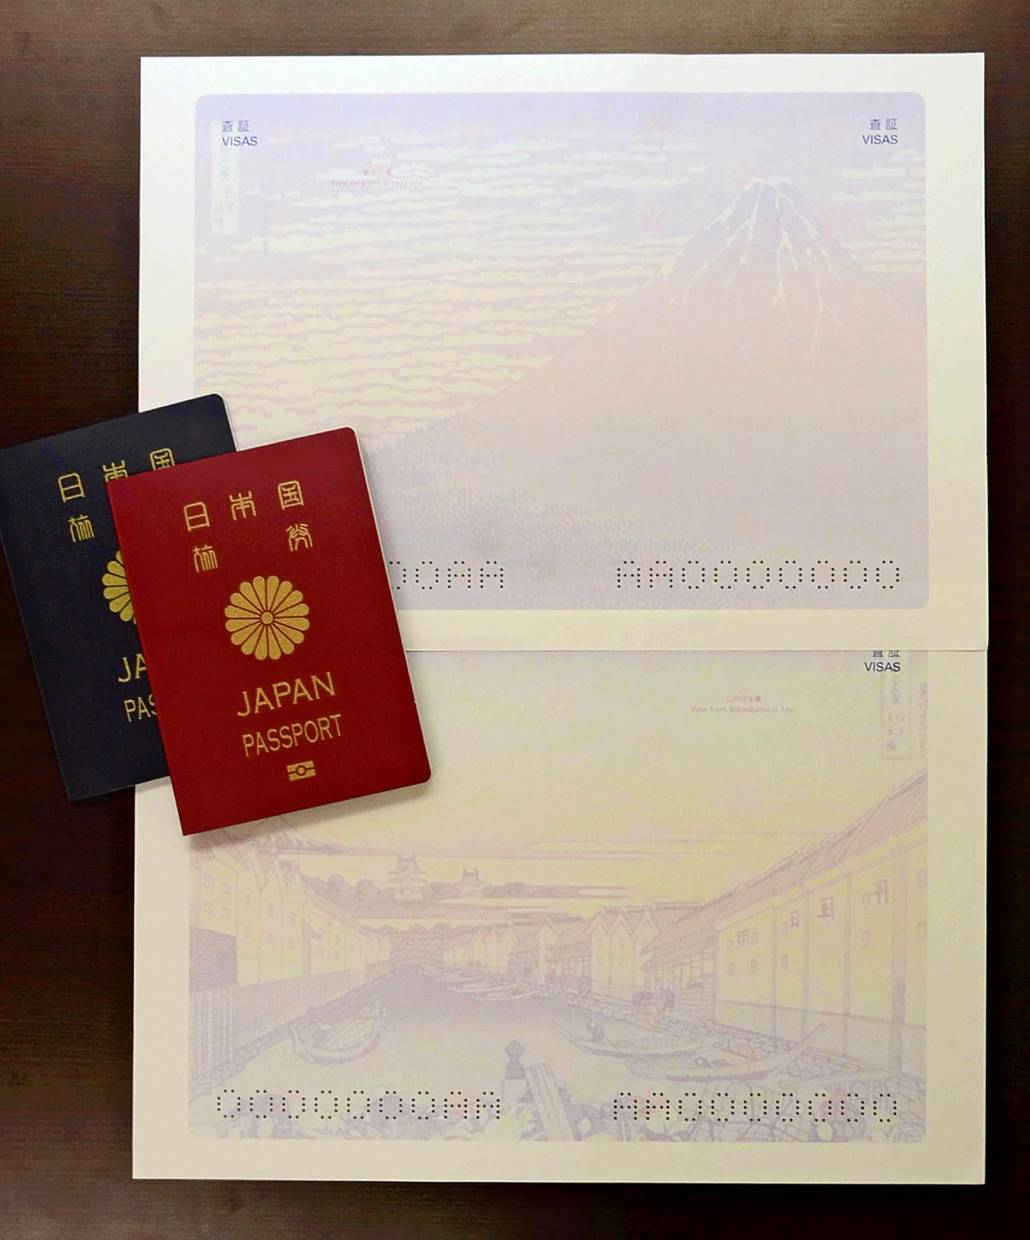 Japan is issuing passports featuring art by ukiyo-e master Hokusai to Japanese citizens. Photo: The Japan News/ANN